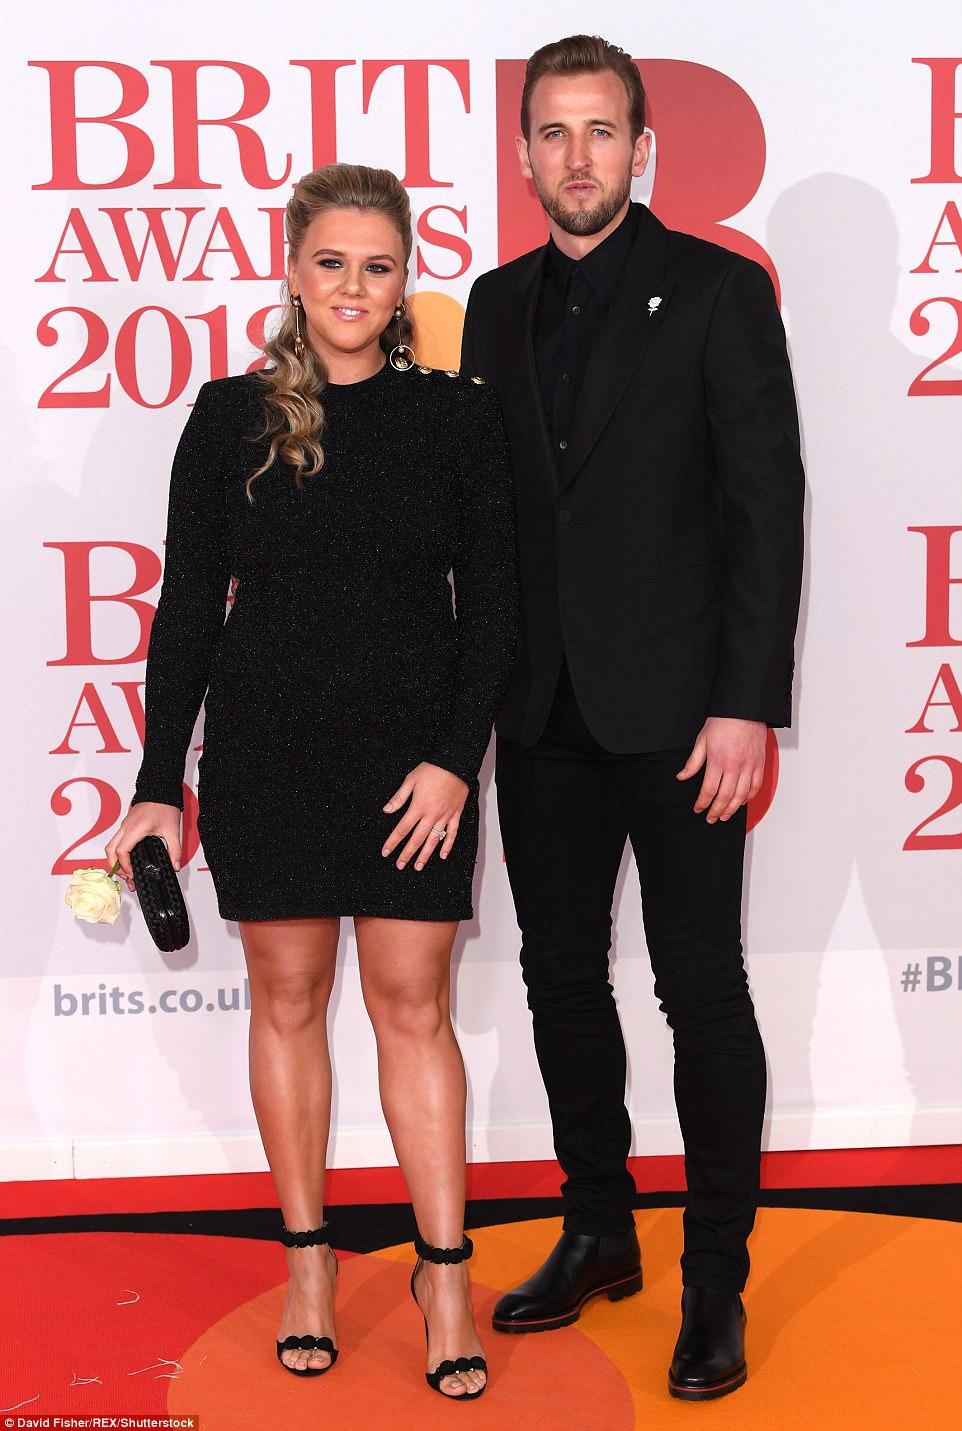 Footballer Harry Kane cosied up to pregnant fiancée Katie Goodland as she cradled her blossoming bump on the BRITs red carpet